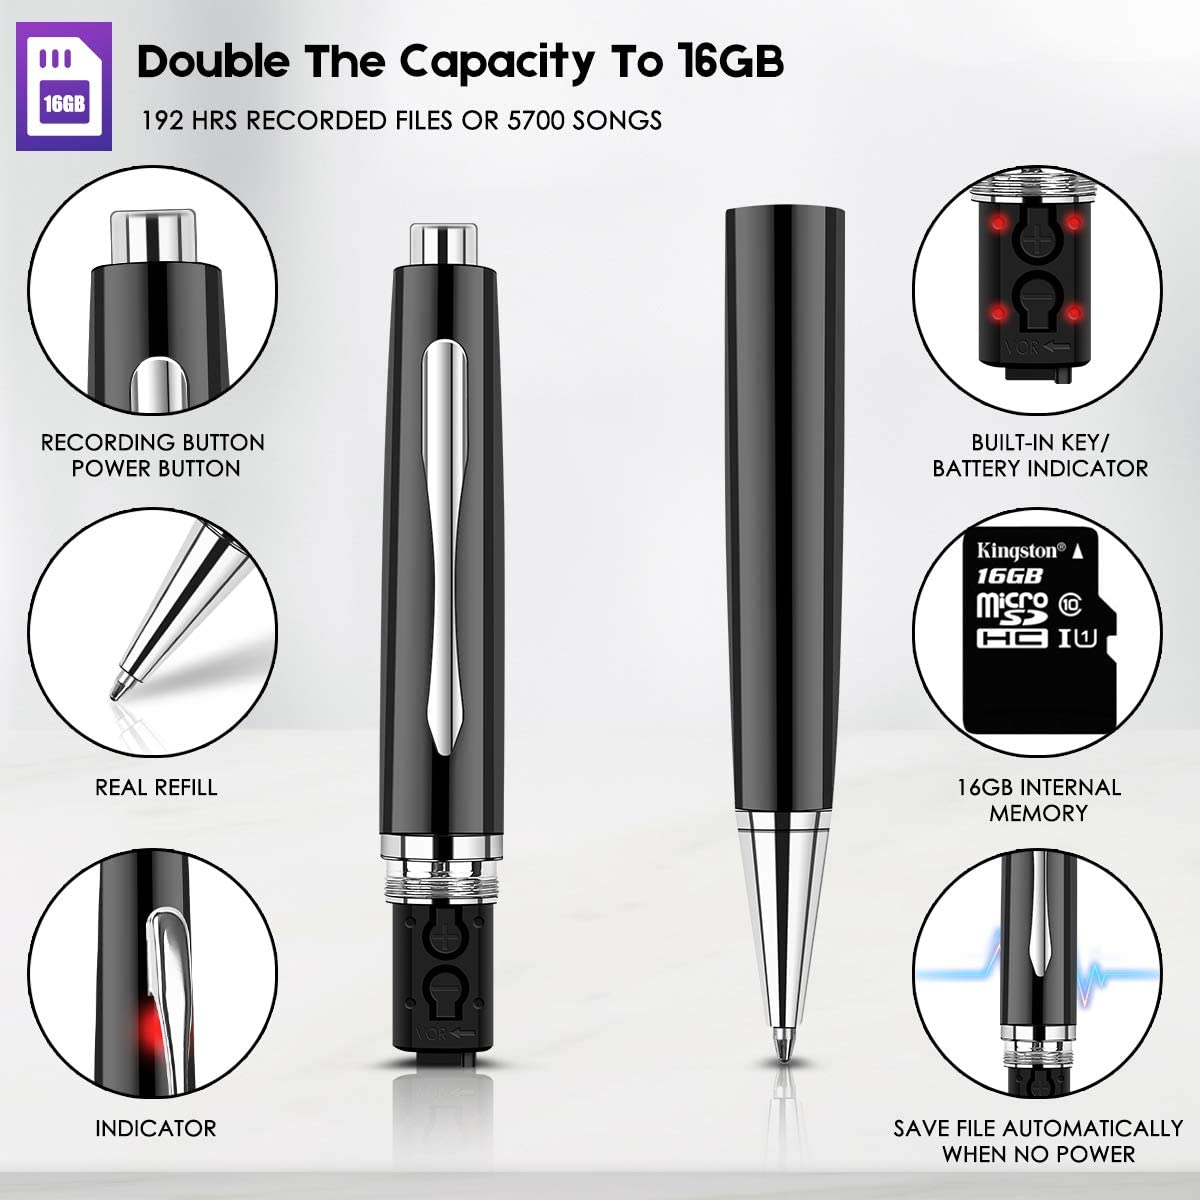 Aomago 16GB Digital Voice Recorder Pen MP3 Audio Recording Device for Lectures Meetings Mini Portable Voice Activated Recorder with Playback USB